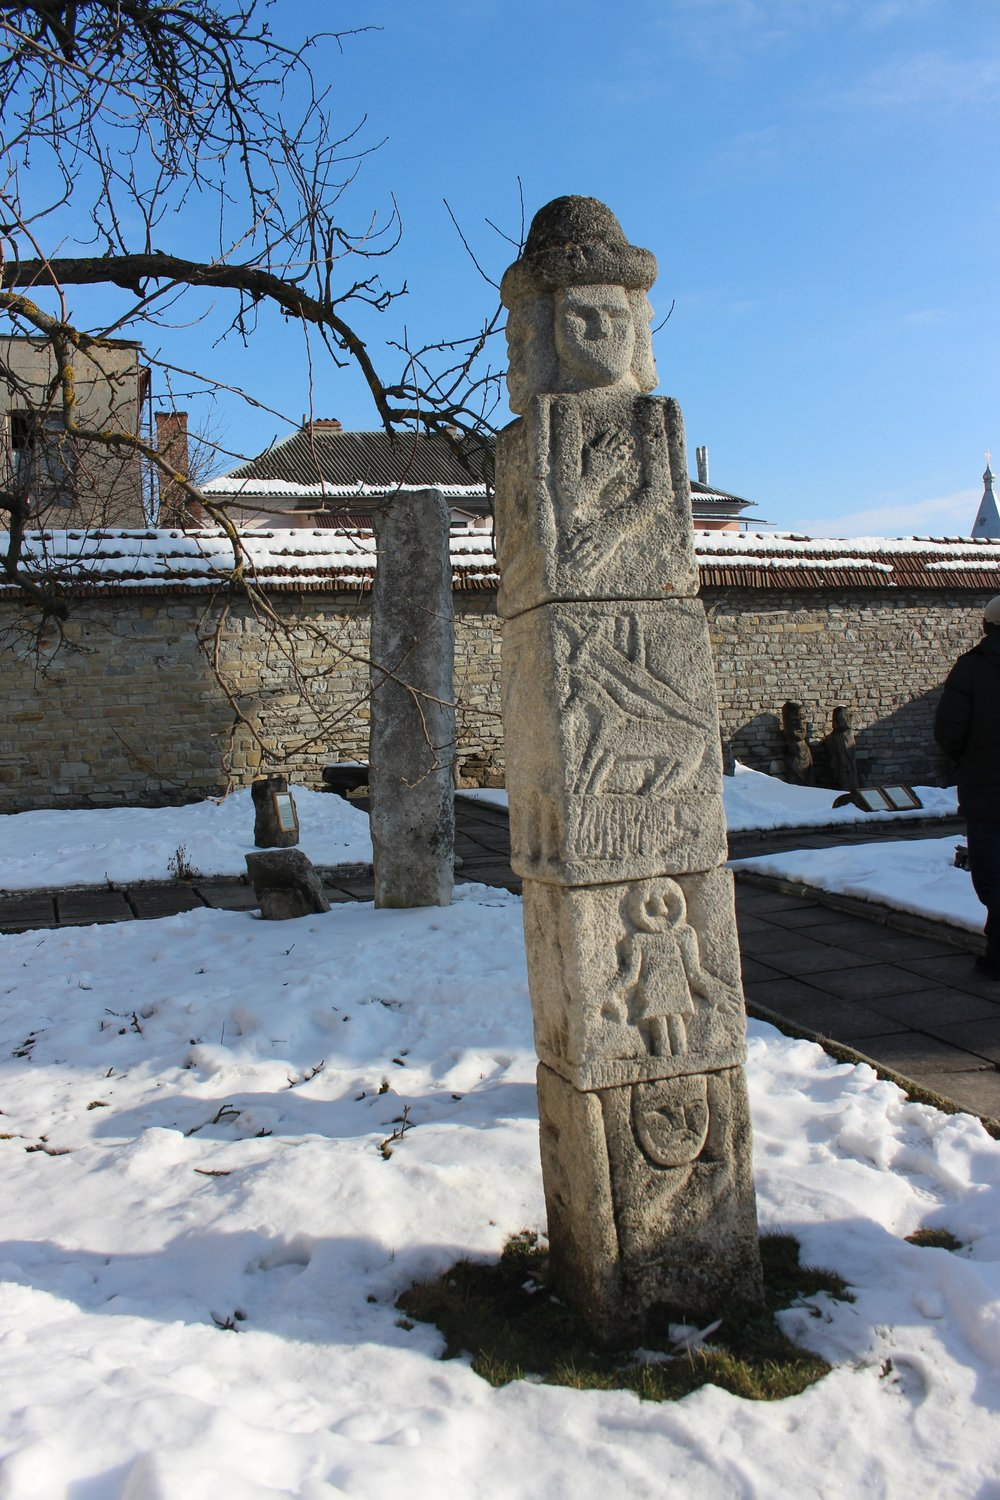 This replica of a sculpture tells a story, much like a totem pole.